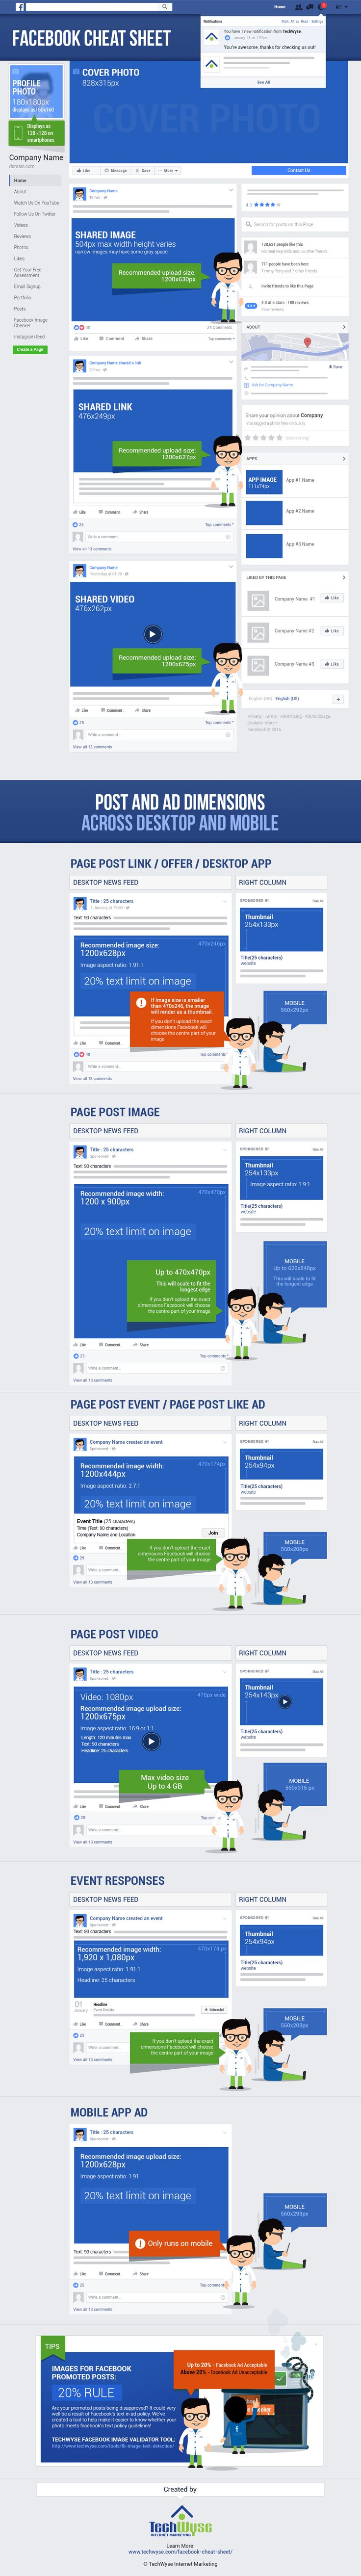 Infographic : Facebook Cheat Sheet For Travel Brands